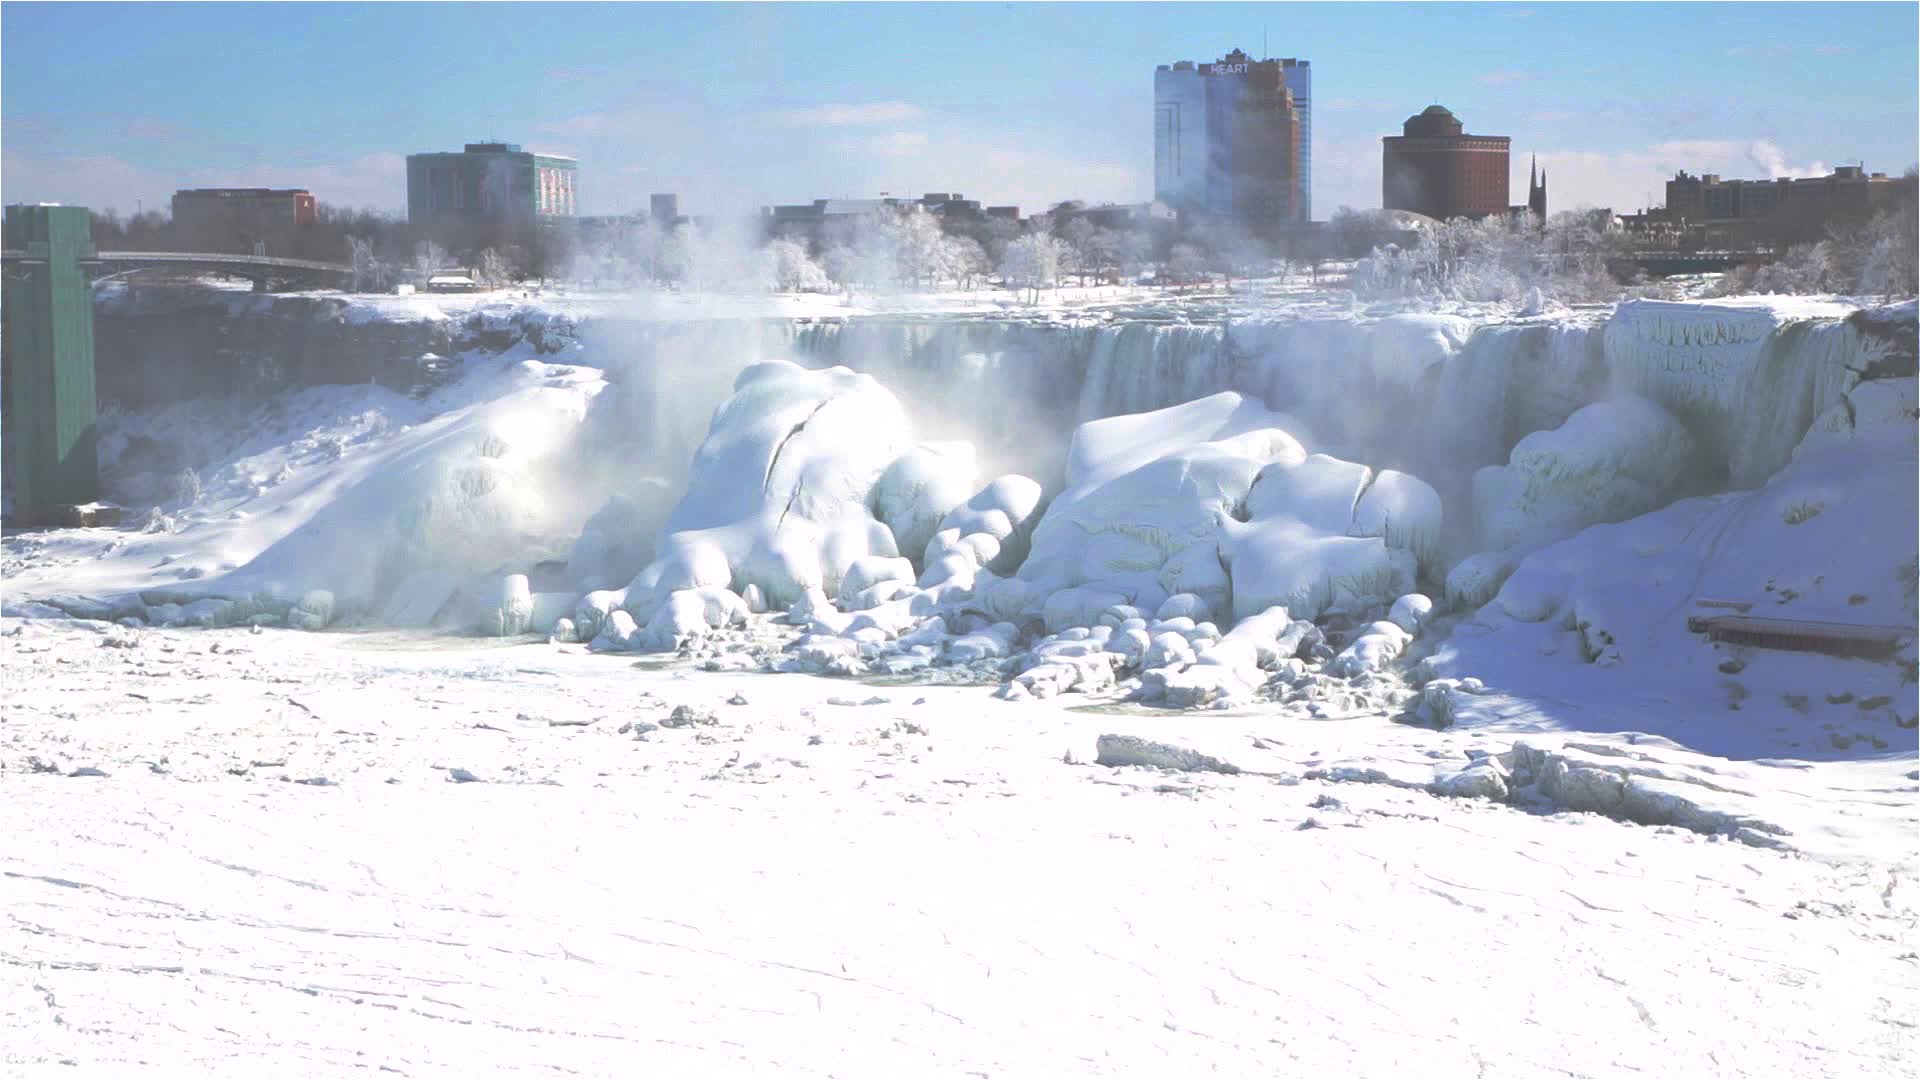 Niagara Falls Freezing Over - Video